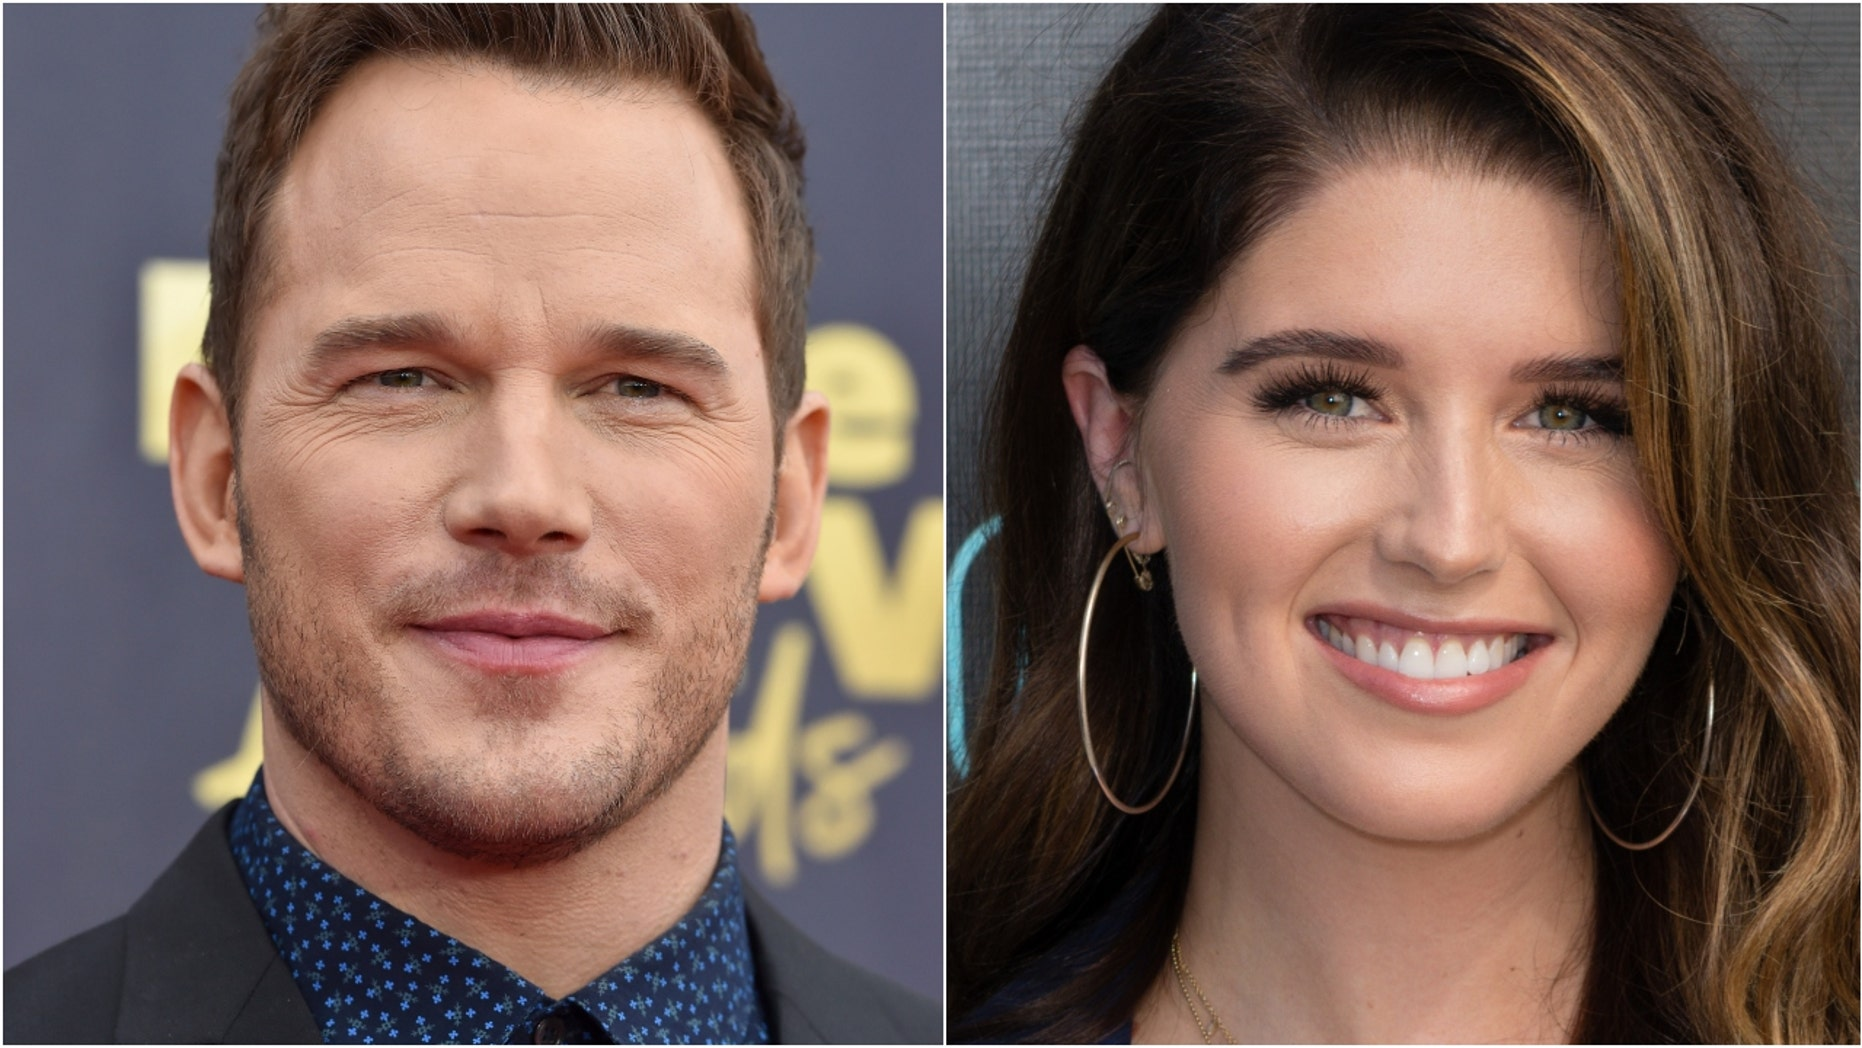 Chris Pratt and Katherine Schwarzenegger waited to live together